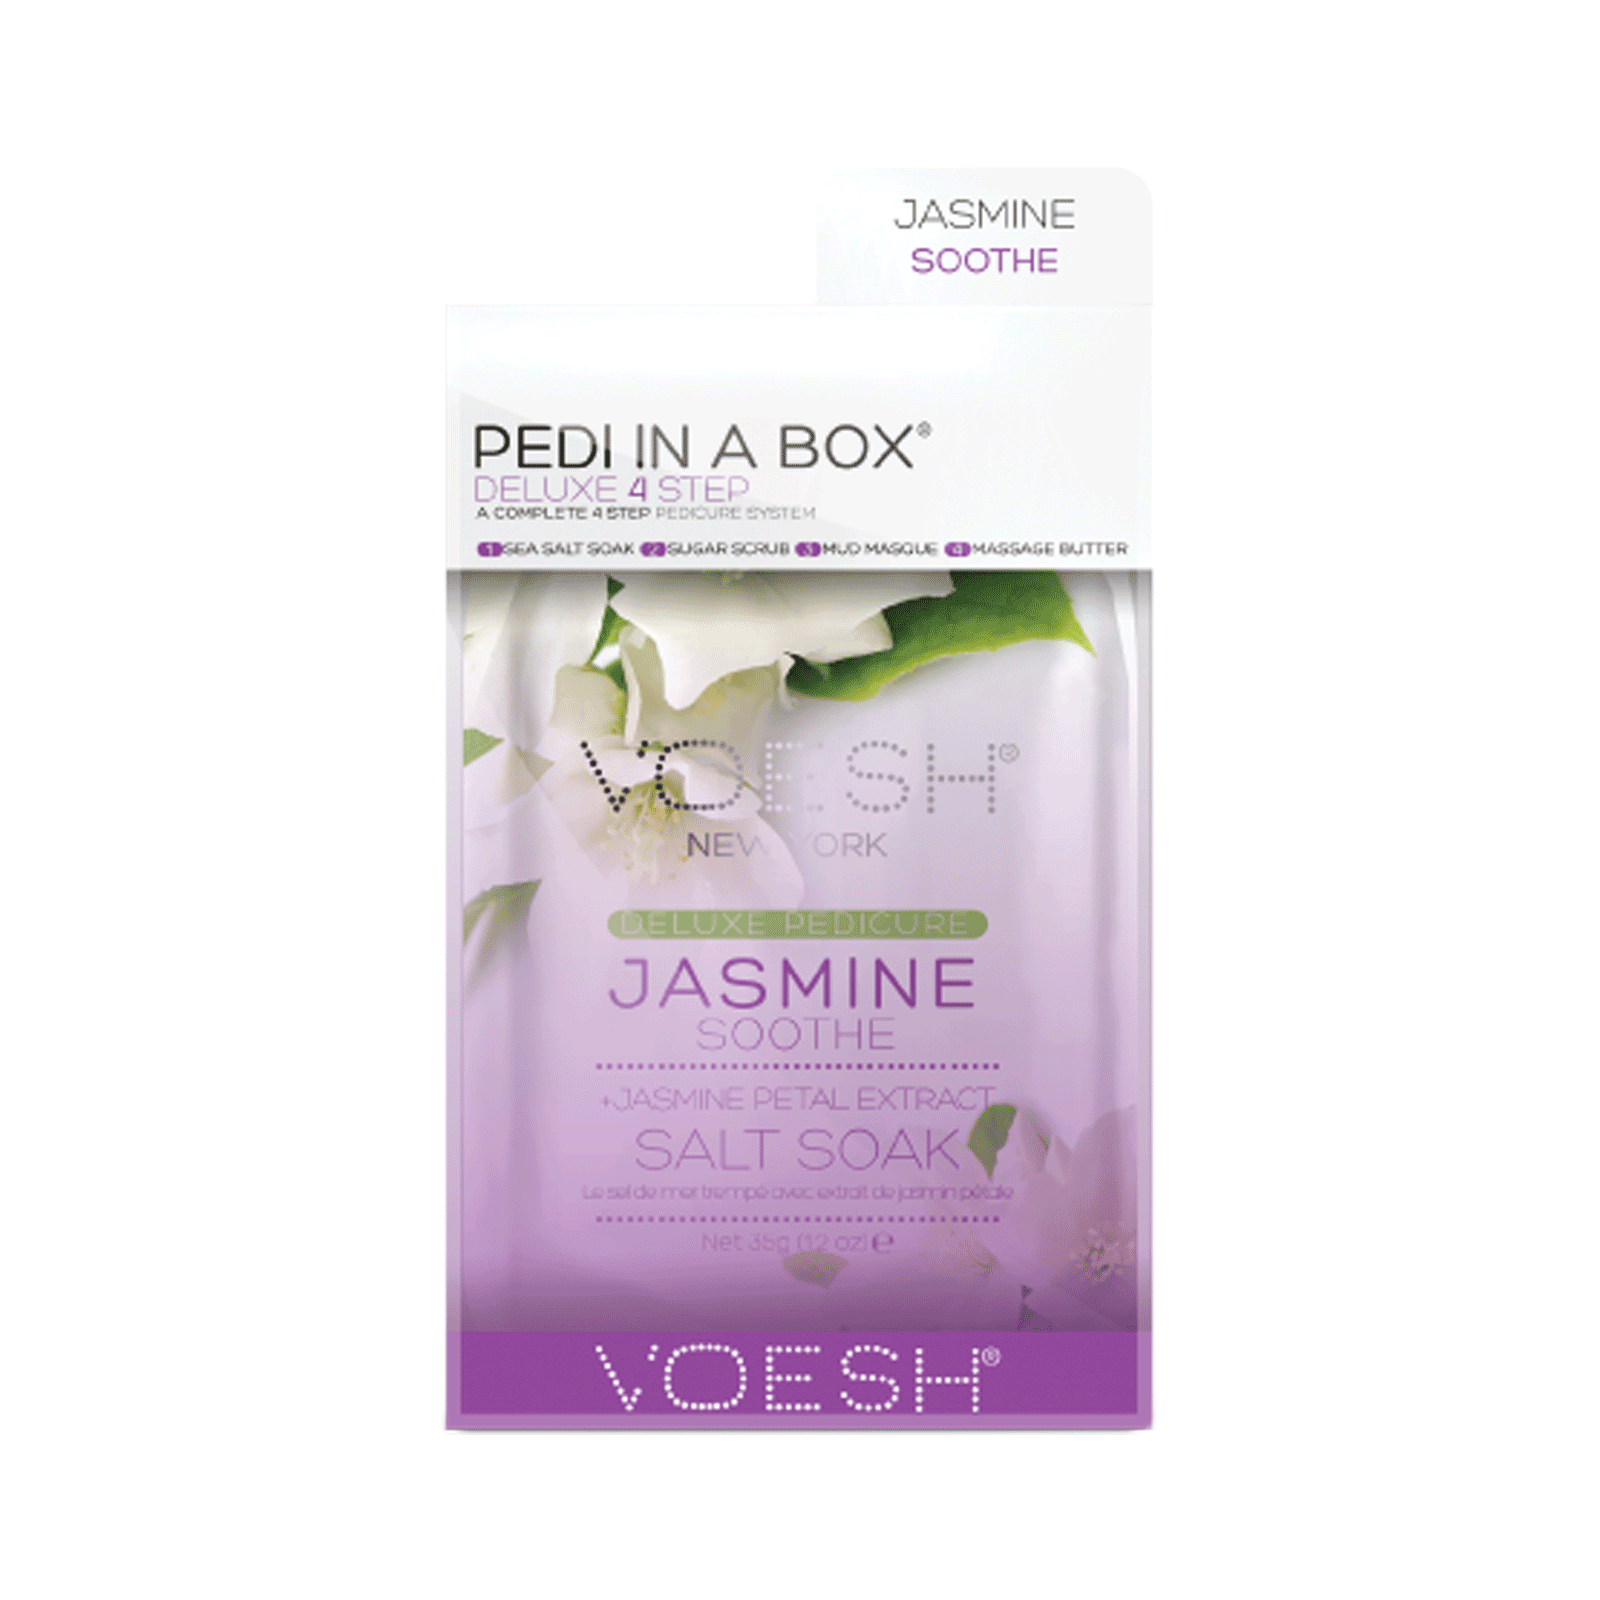 Deluxe 4-Step Pedi In A Box Jasmine Soothe